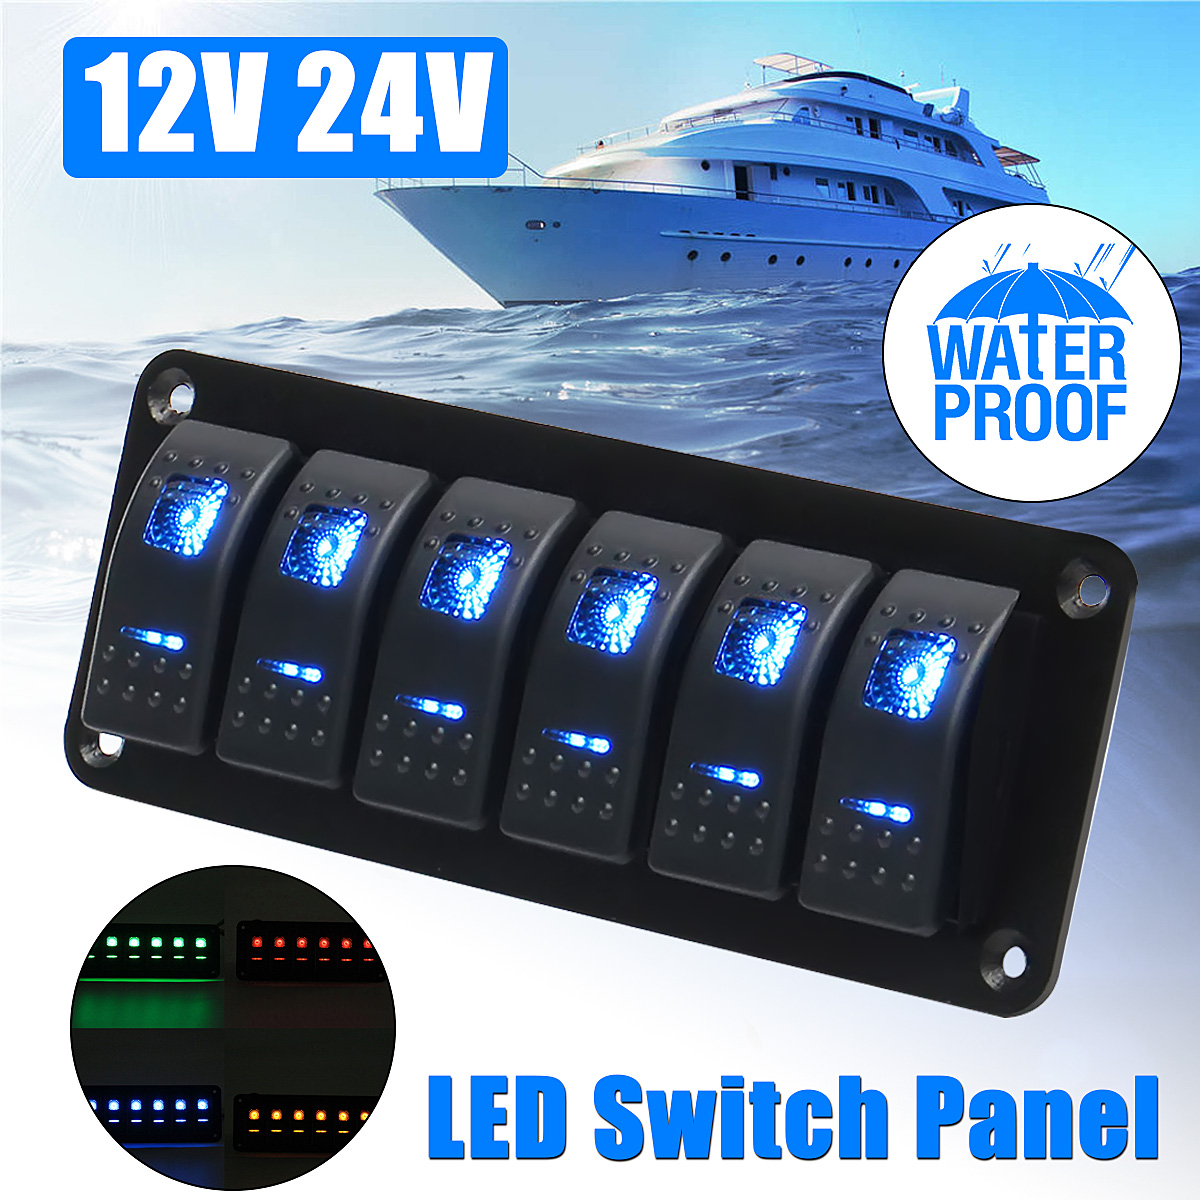 12V 24V 6 Gang Dual LED Light Bar Caravan Marine Boat RV Rocker Switch Panel Universal Car Boat Switch Panel Lighter Socket dc 12v 24v 6 gang led switch panel slim touch control panel box for car marine boat caravan